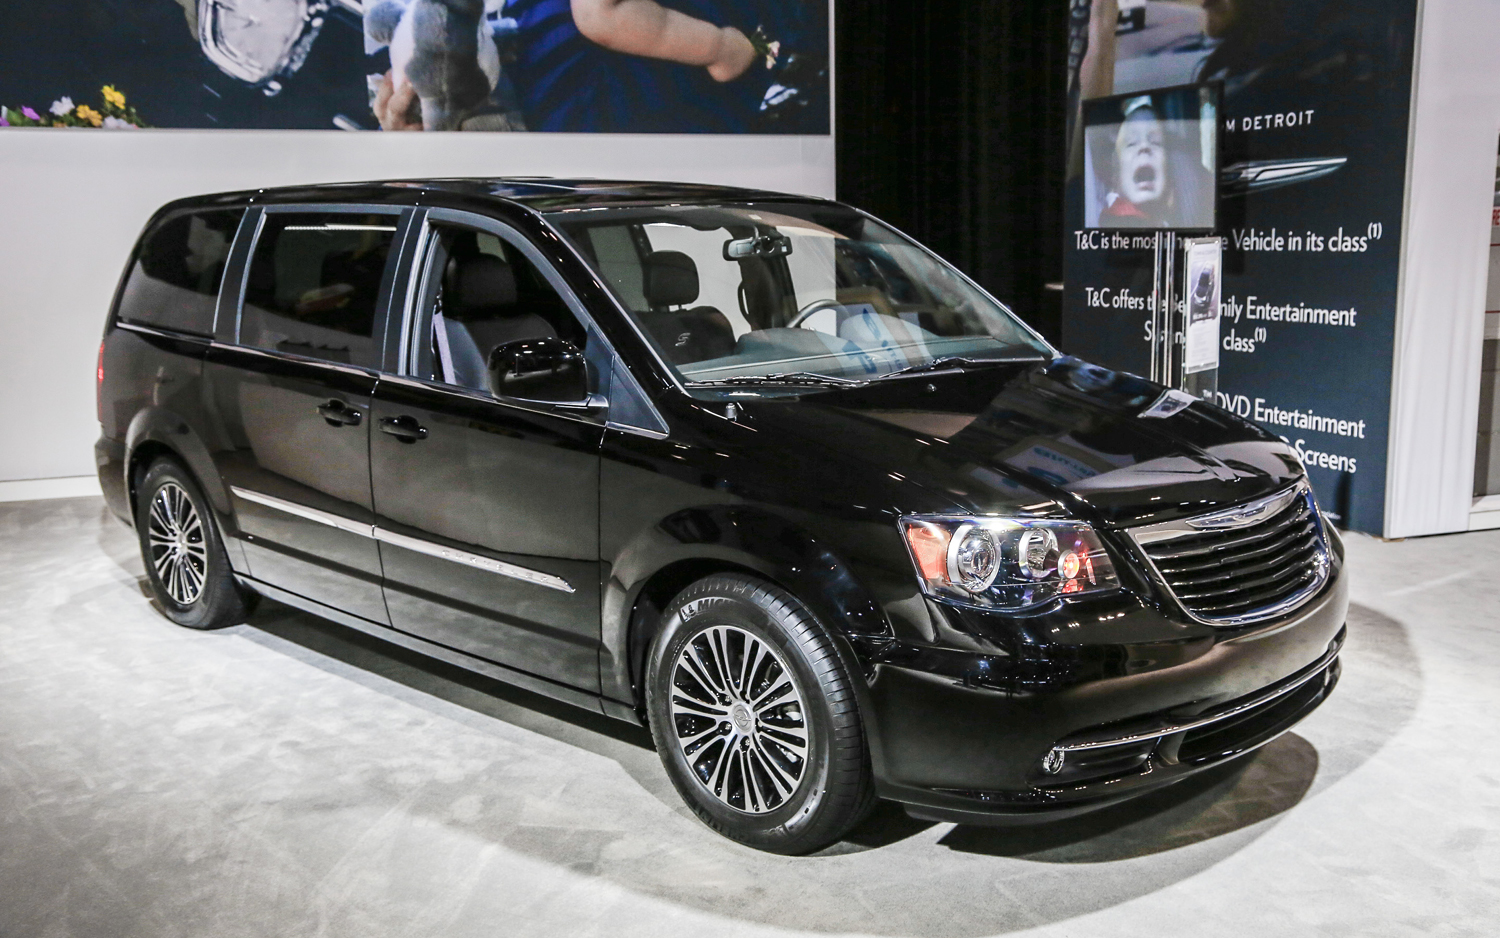 Town And Country Auto >> 2013 Chrysler Town Country S Rolling Into L A Auto Show With